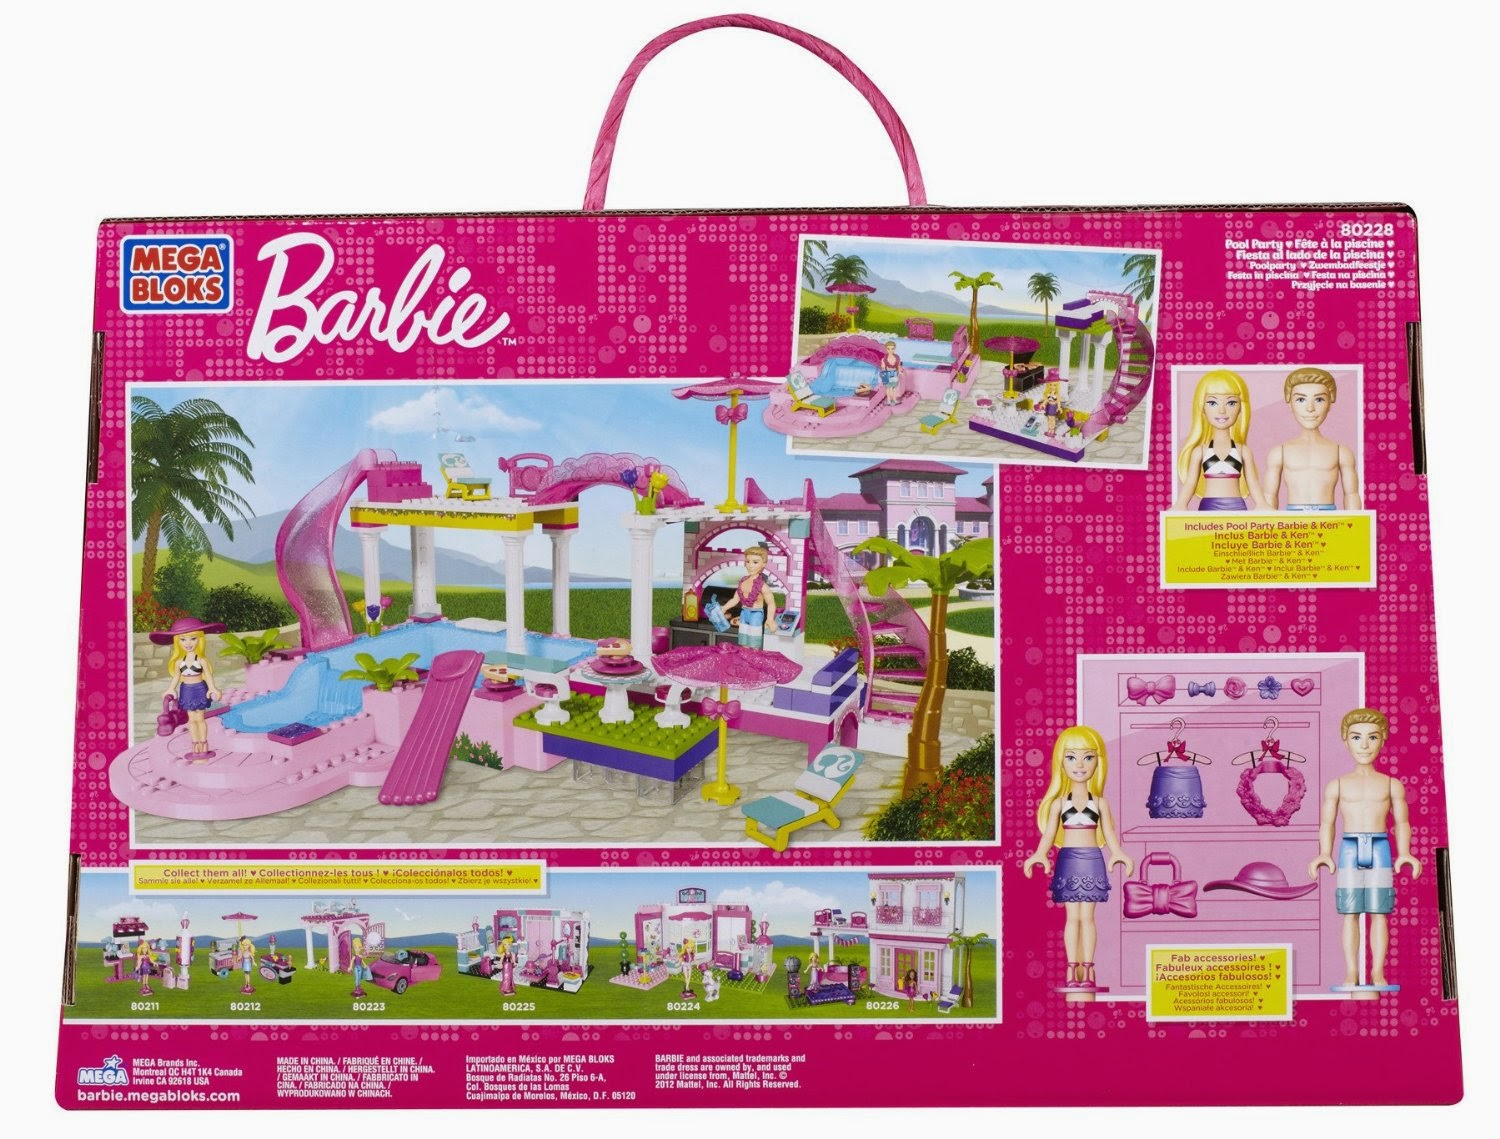 Giochi barbie barbie mega bloks 80228 in offerta limitata for Piscina di barbie